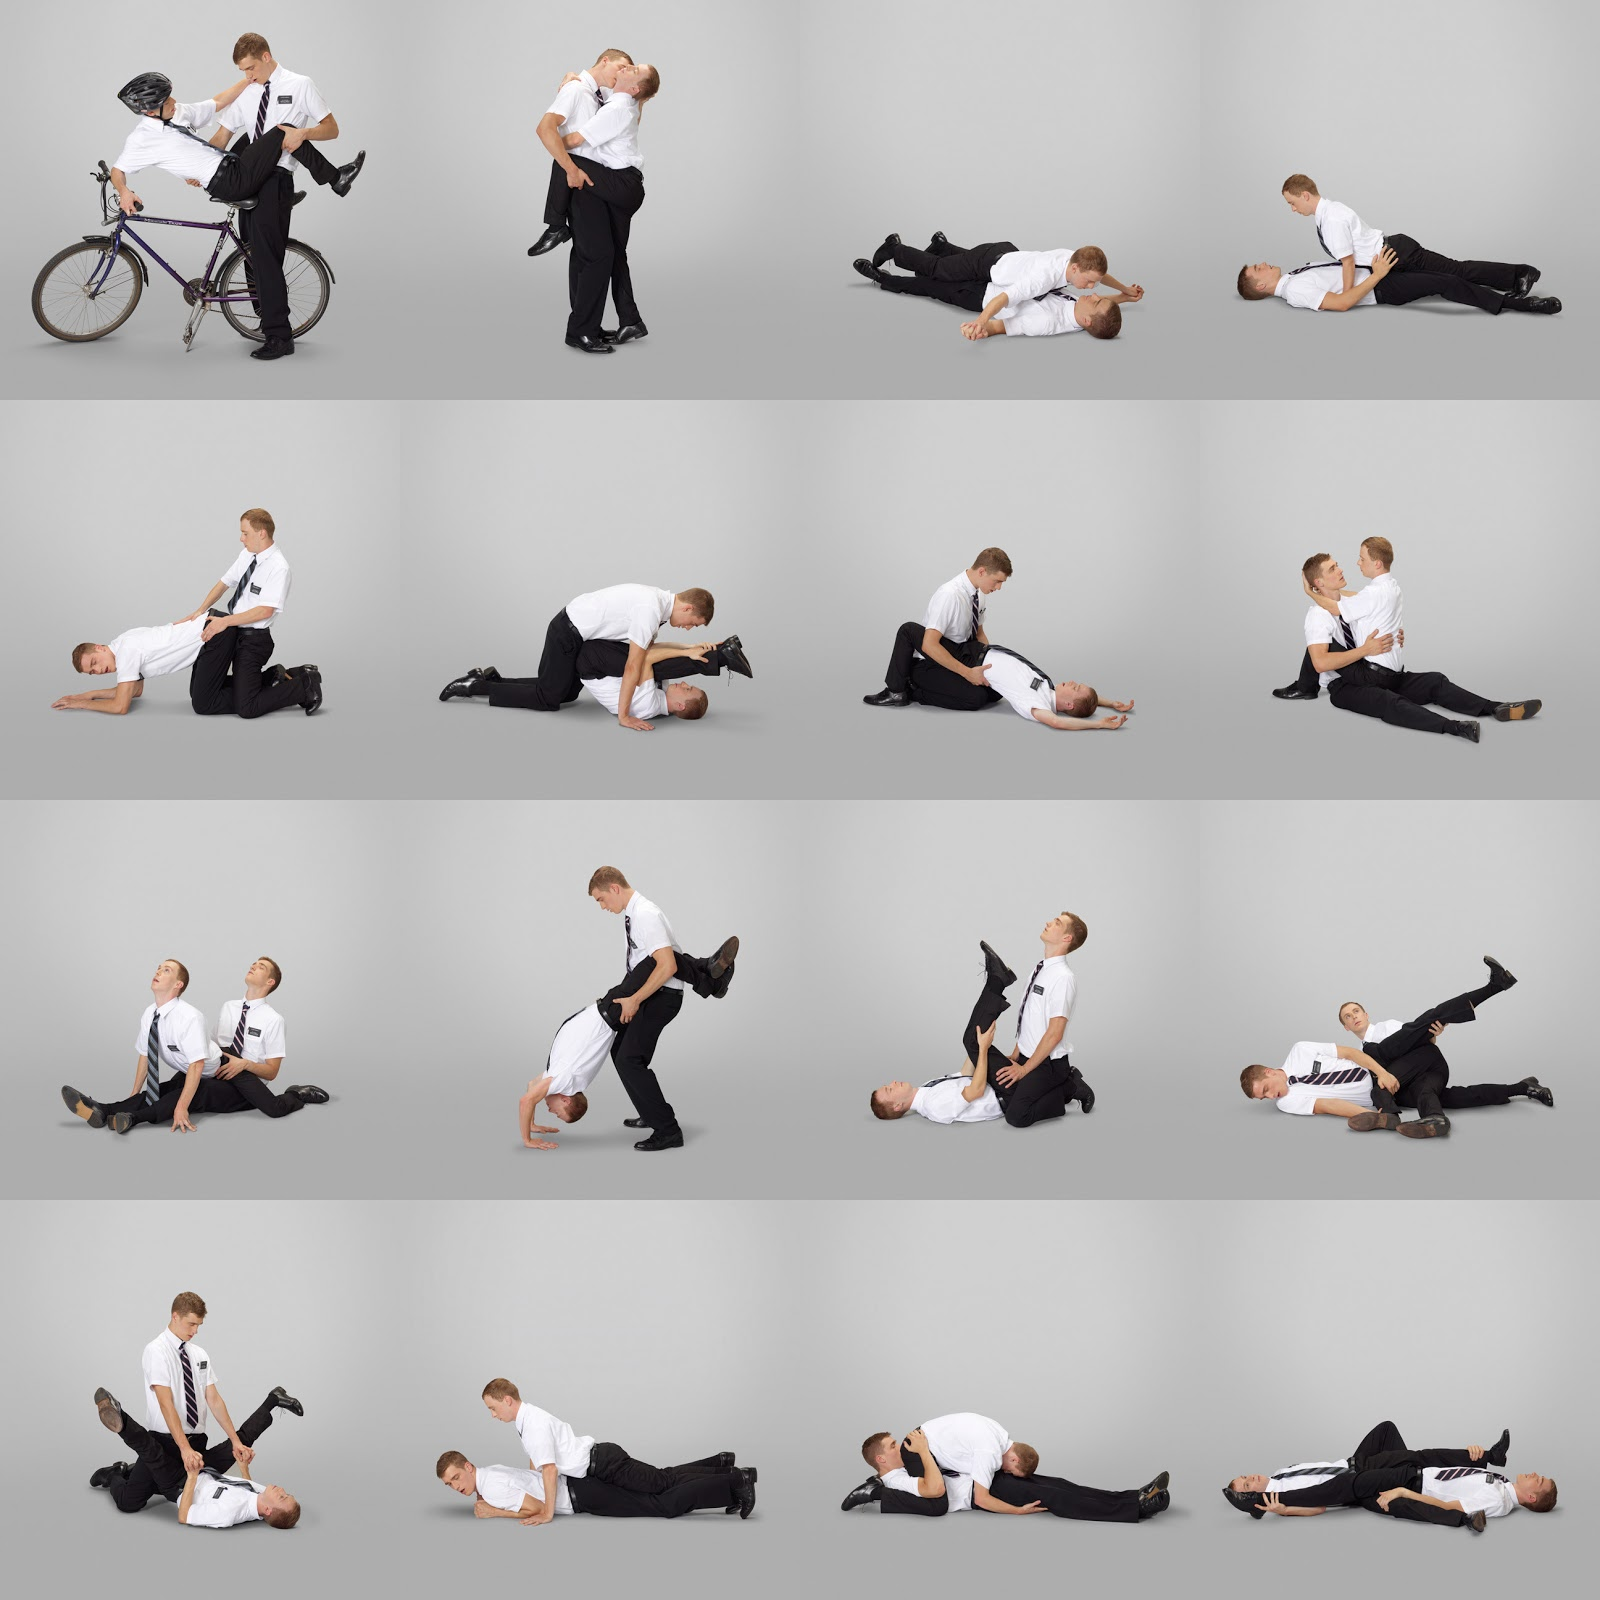 How do you perform the missionary position